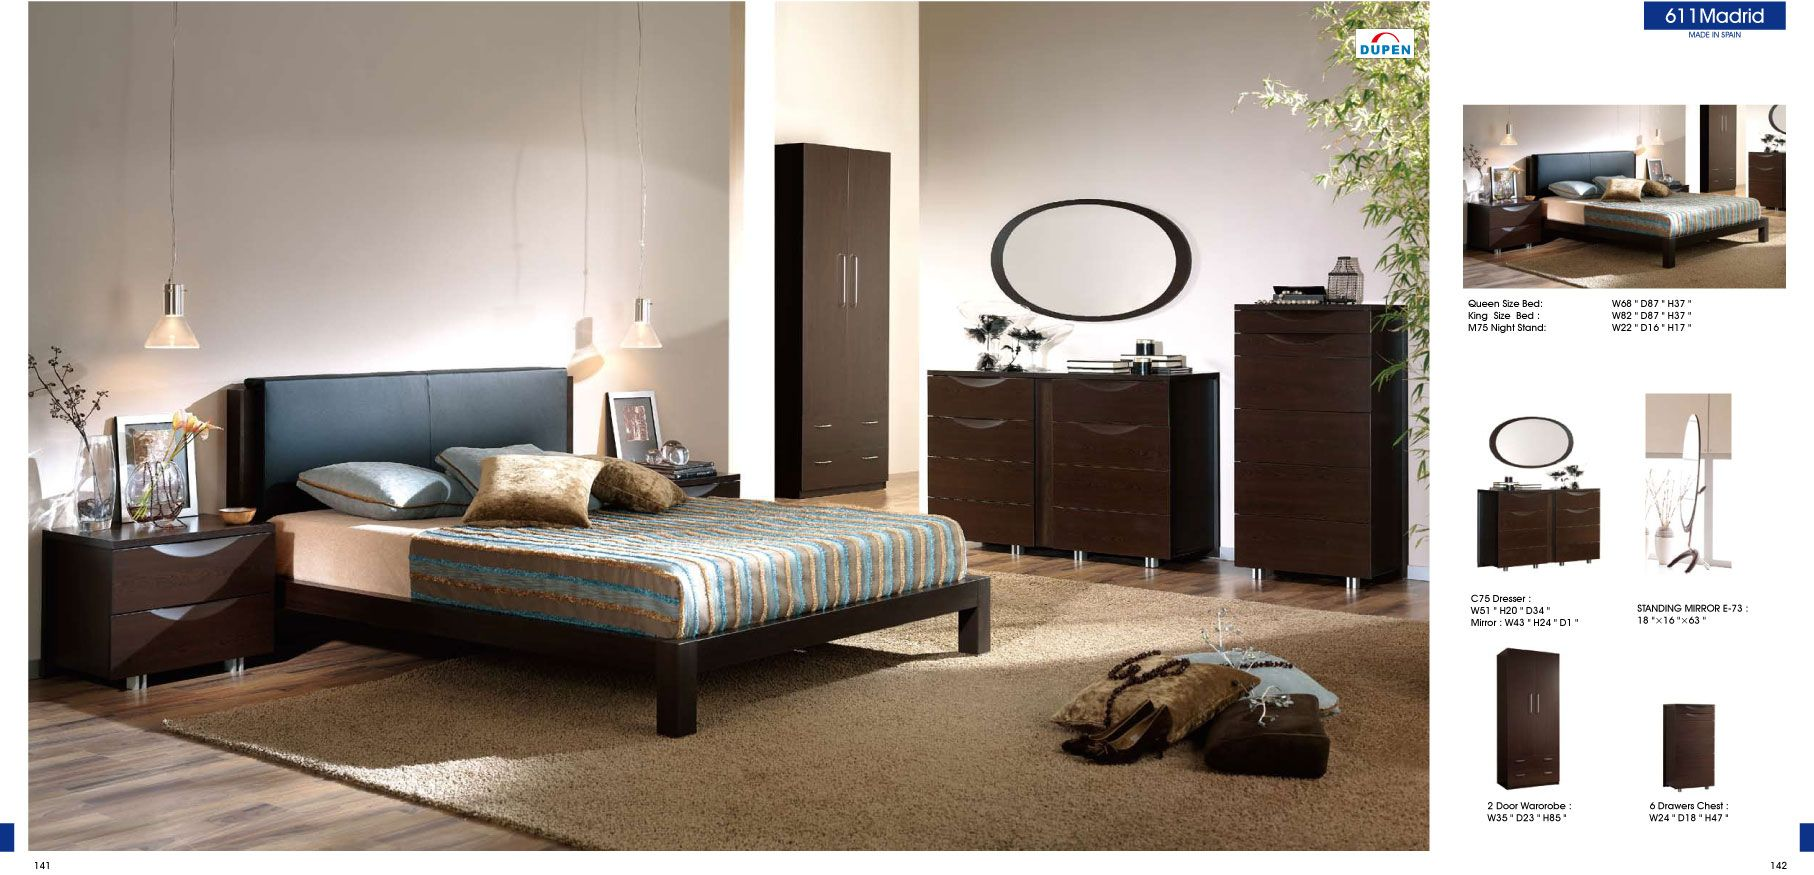 Latest Furniture Design For Bedroom Entrancing Bedroom Furniture Modern Bedrooms 611 Madrid M75 C75  Bedrooms Decorating Inspiration